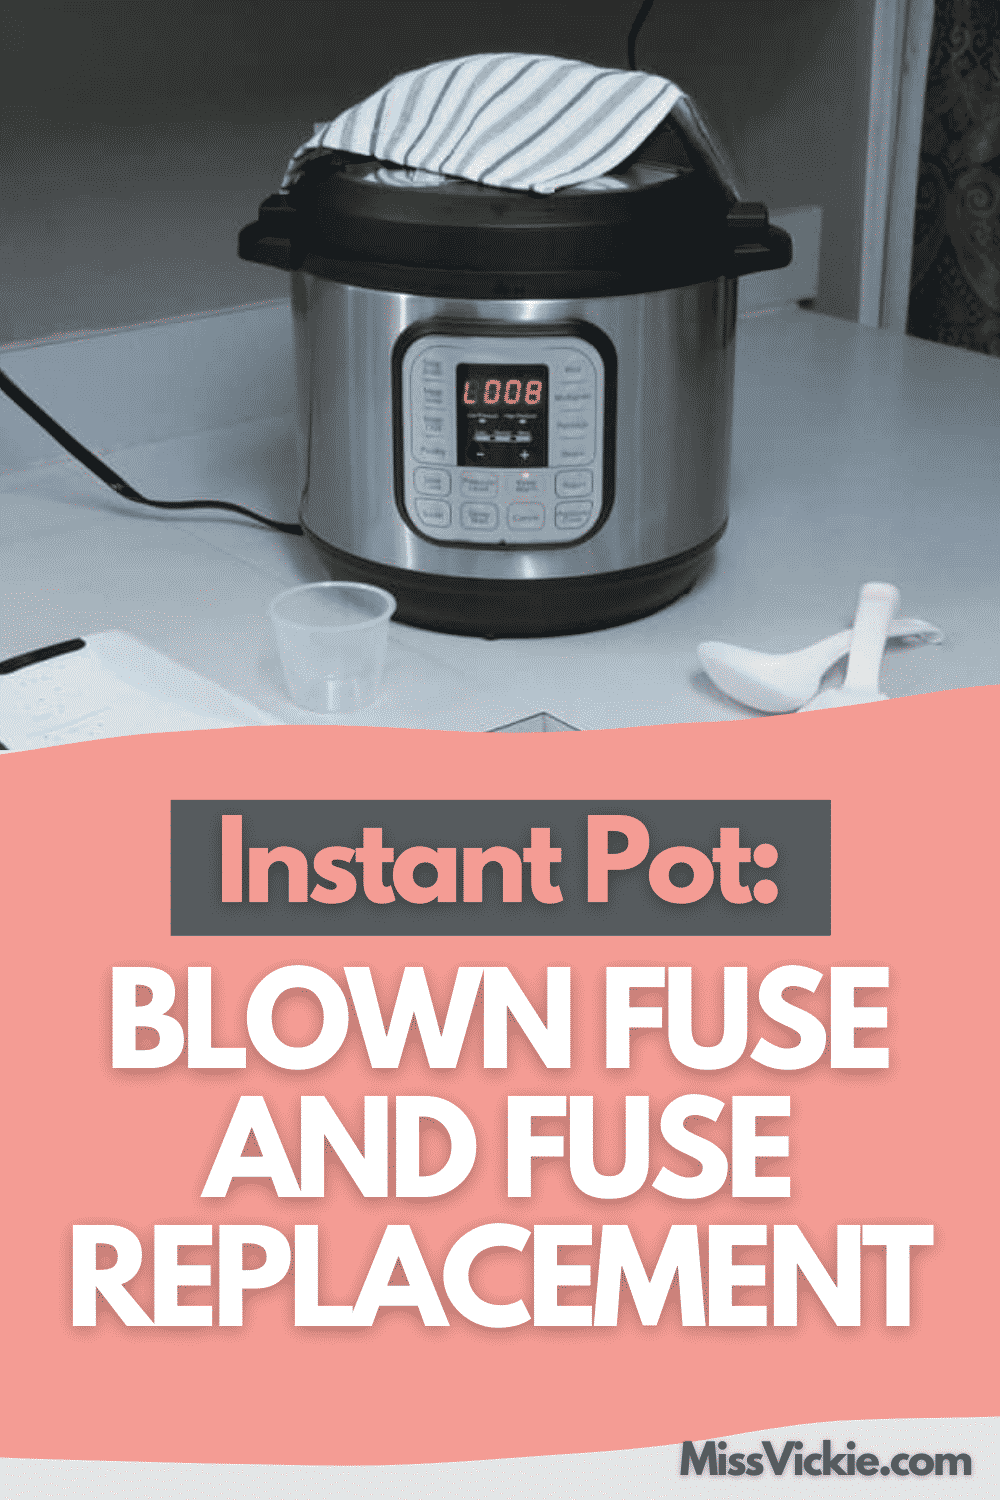 Instant Pot Blown Fuse And Fuse Replacement